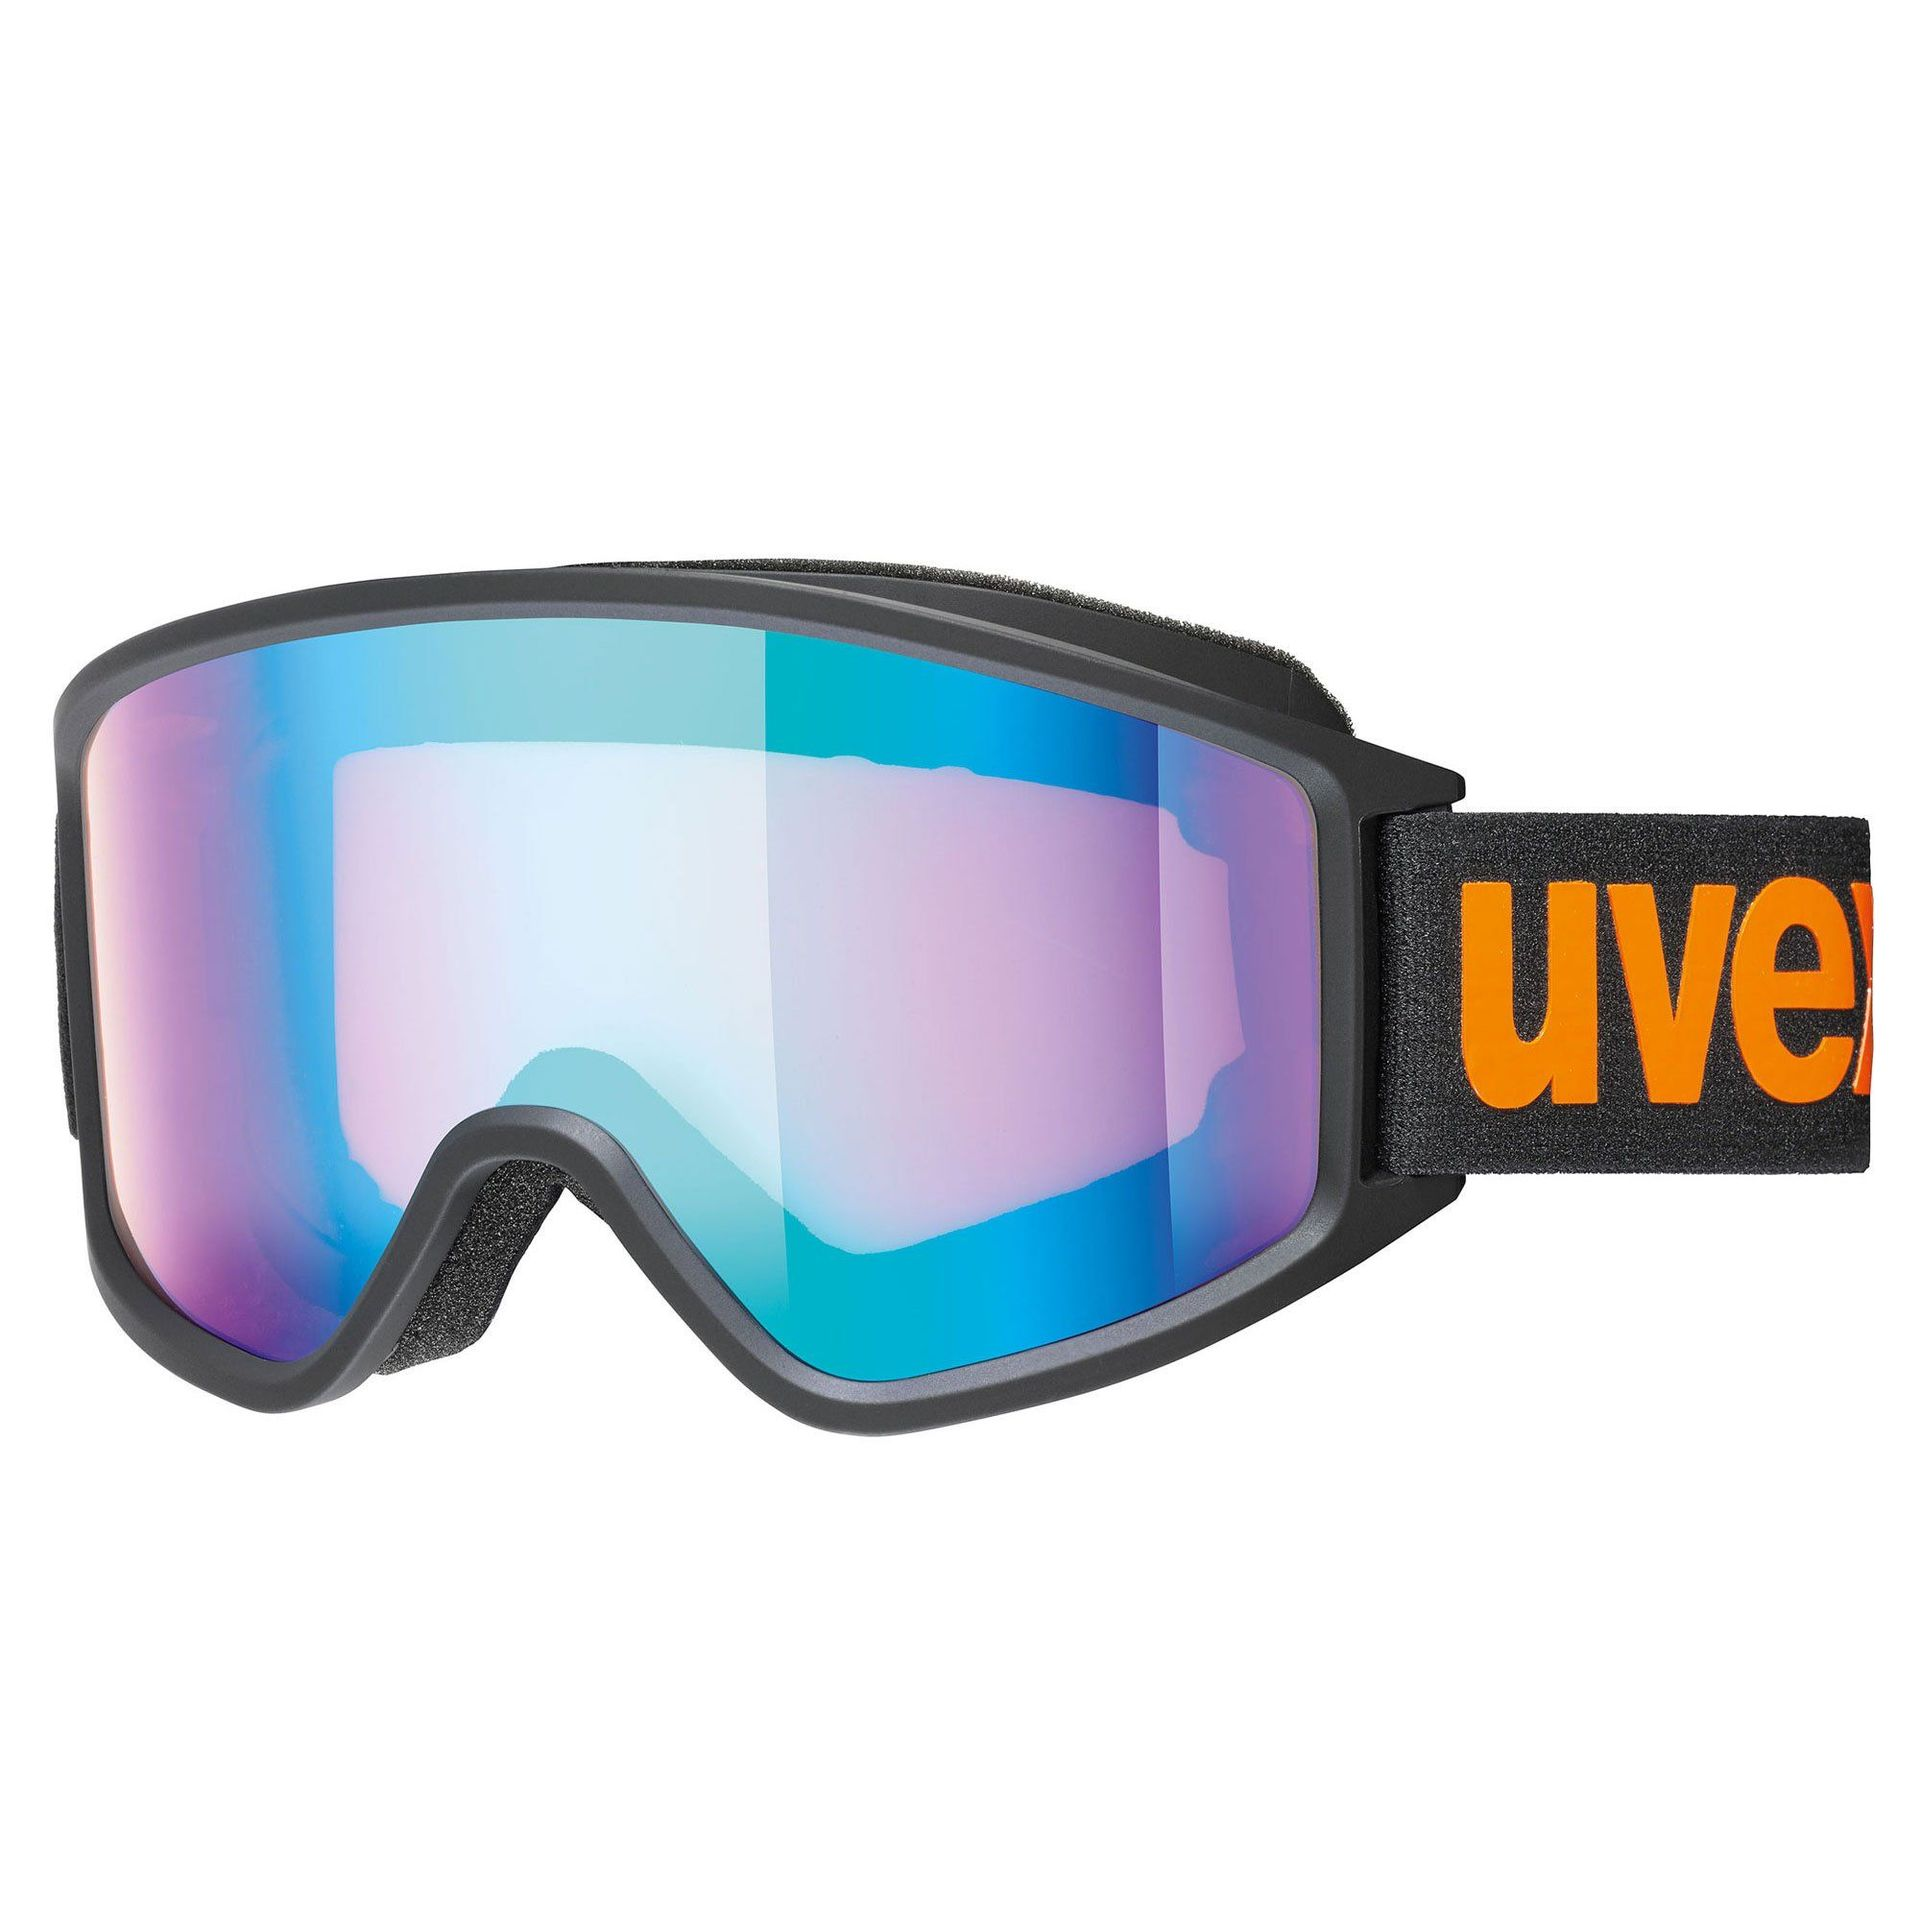 GOGLE UVEX G.GL 3000 CV BLACK ORANGE MAT|MIRROR BLUE COLORVISION ORANGE 55|1|333|2130